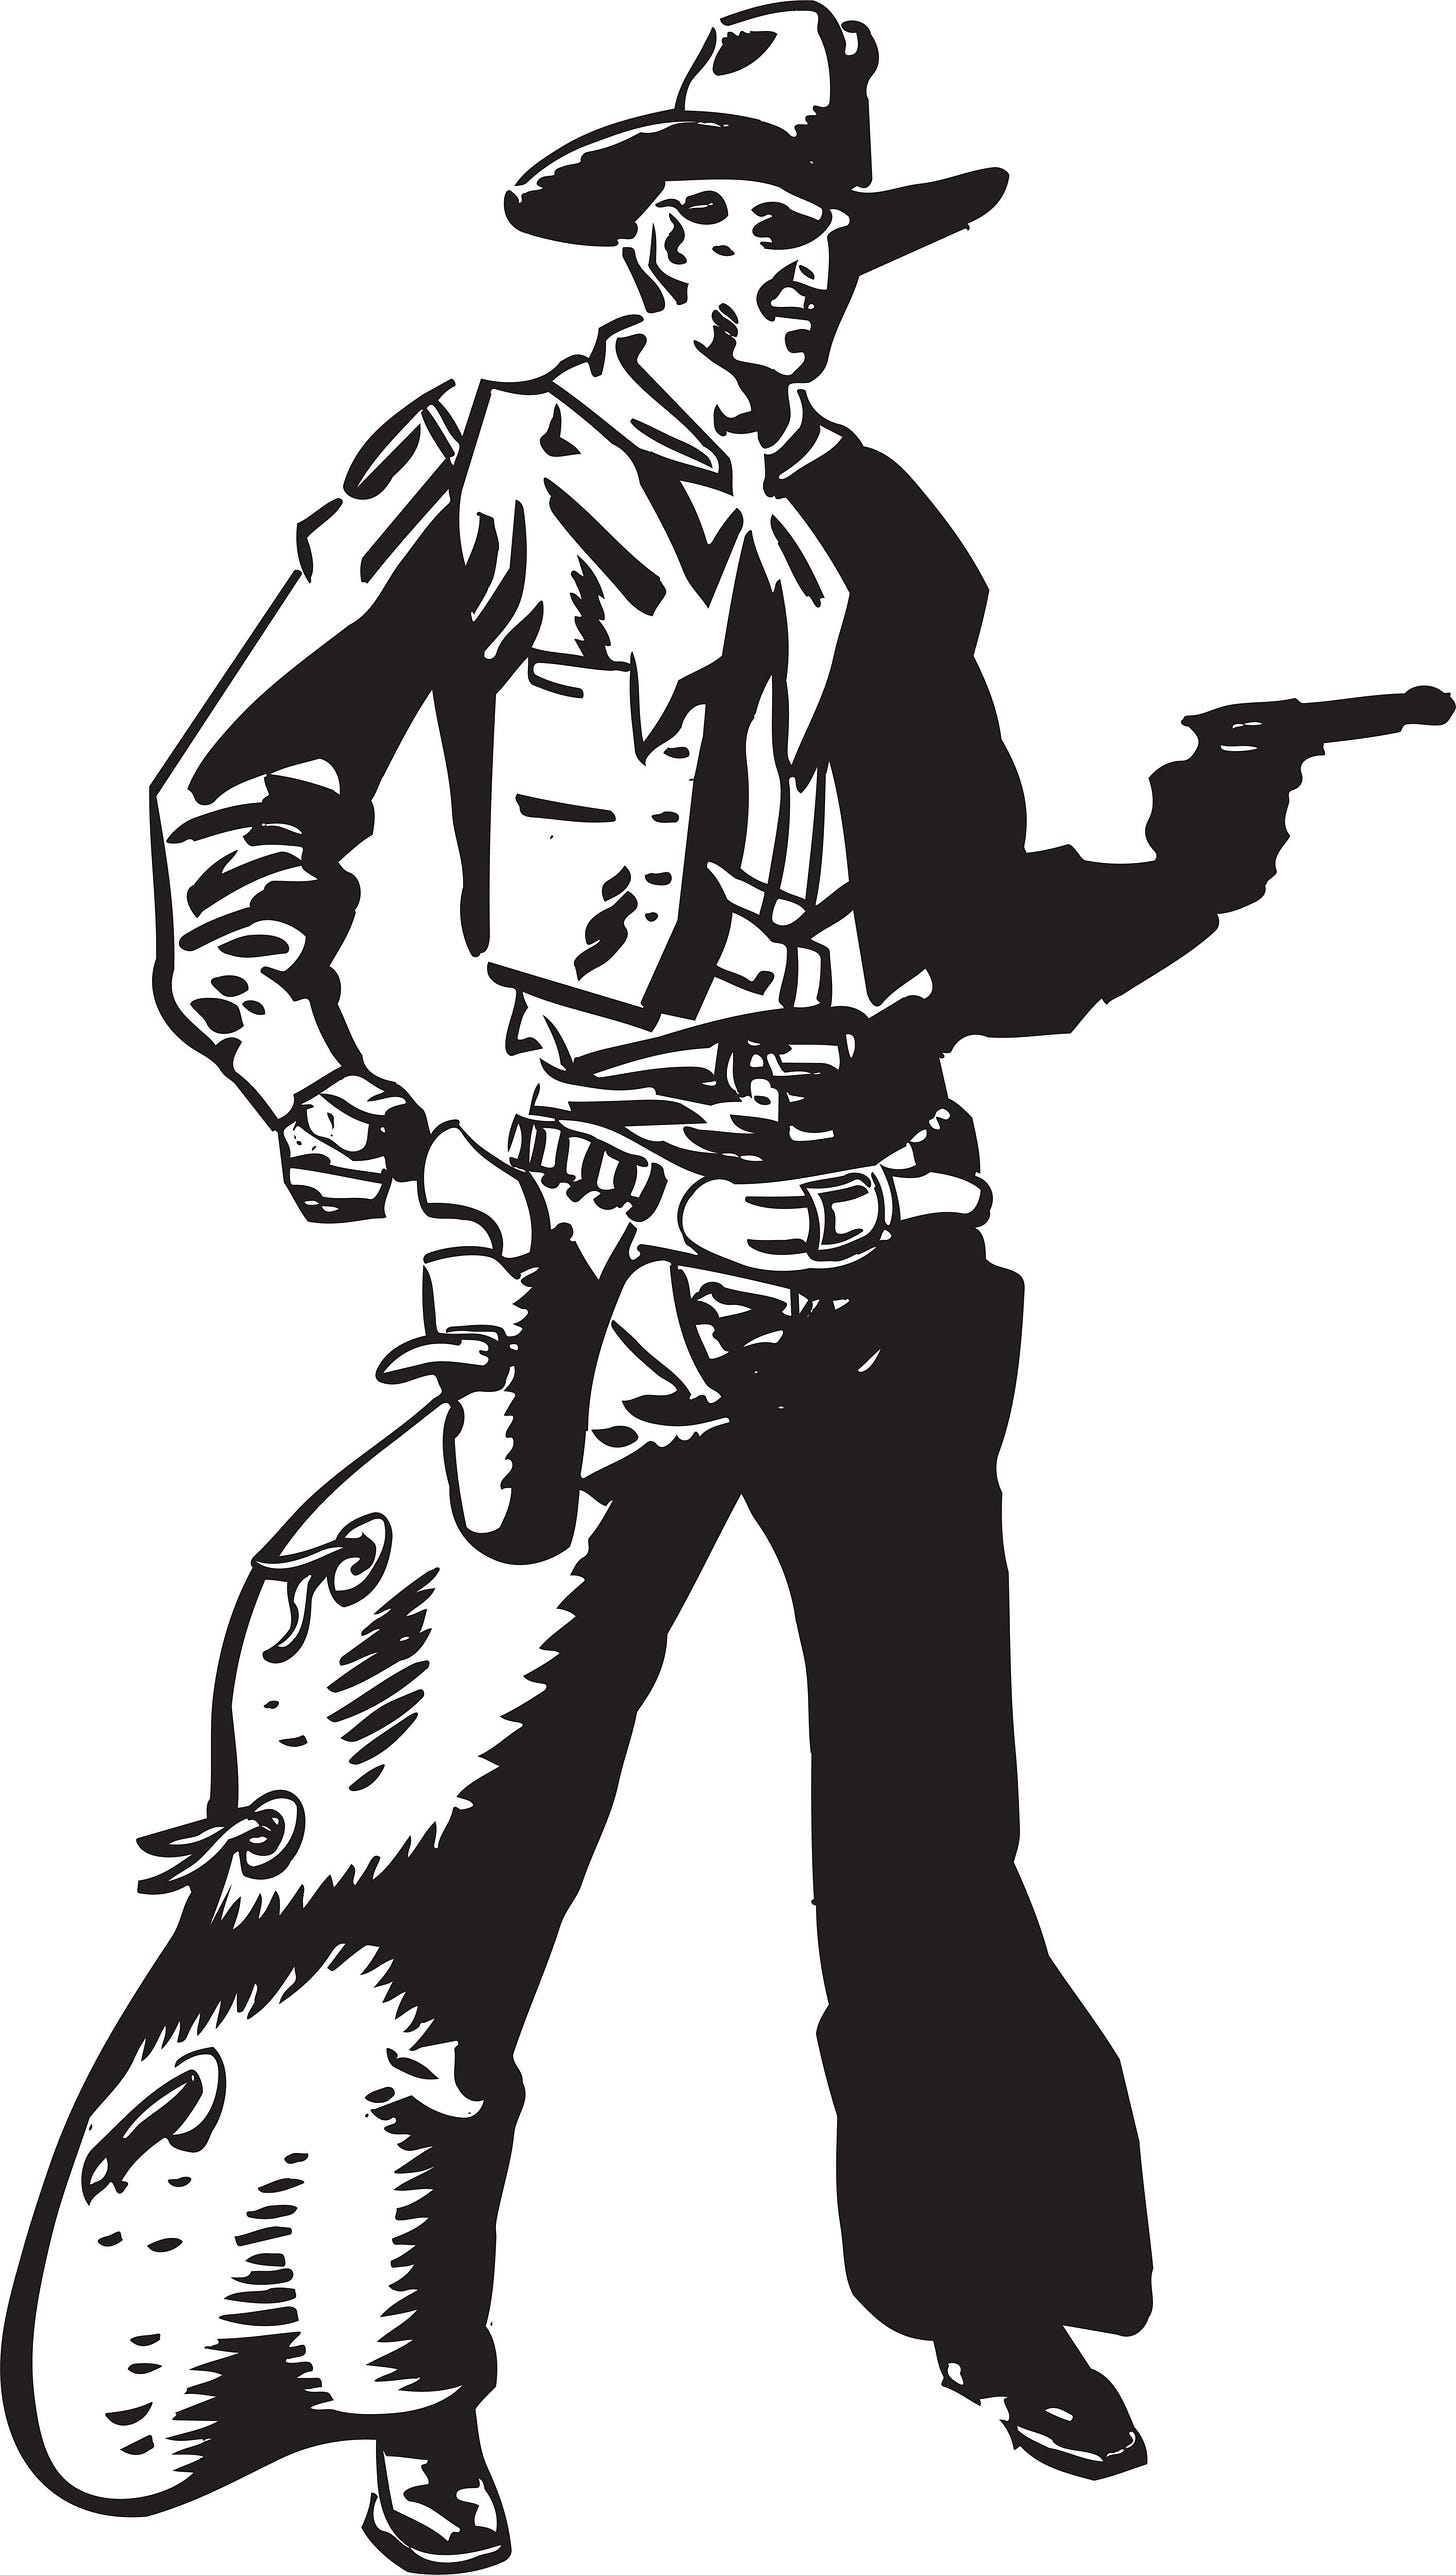 Black-and-white cartoon sketch of a cowboy standing in a wide stance, face scowling, right fist clenched and pistol drawn.